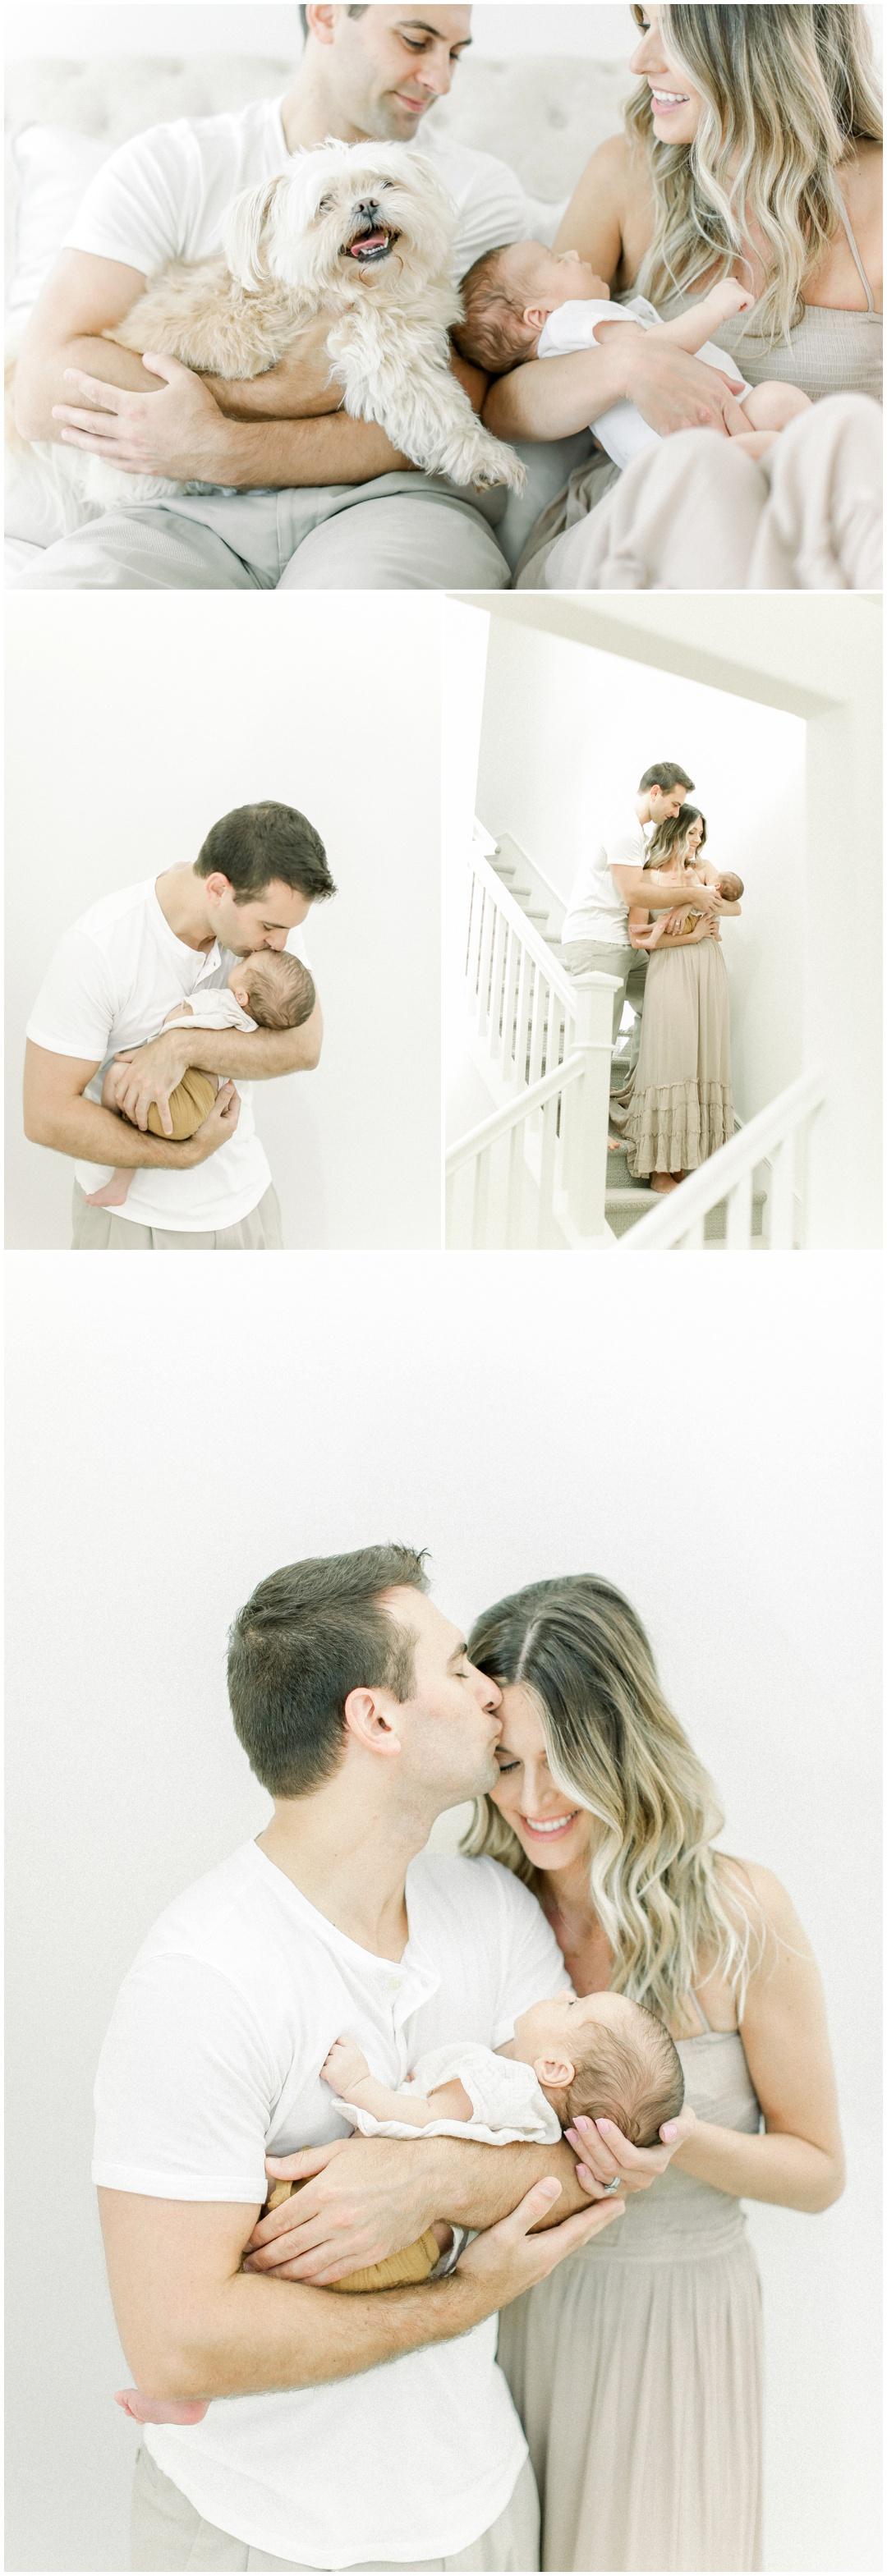 Newport_Beach_Newborn_Session_Orange_County_Family_Photographer_Danielle_Saluan__4300.jpg